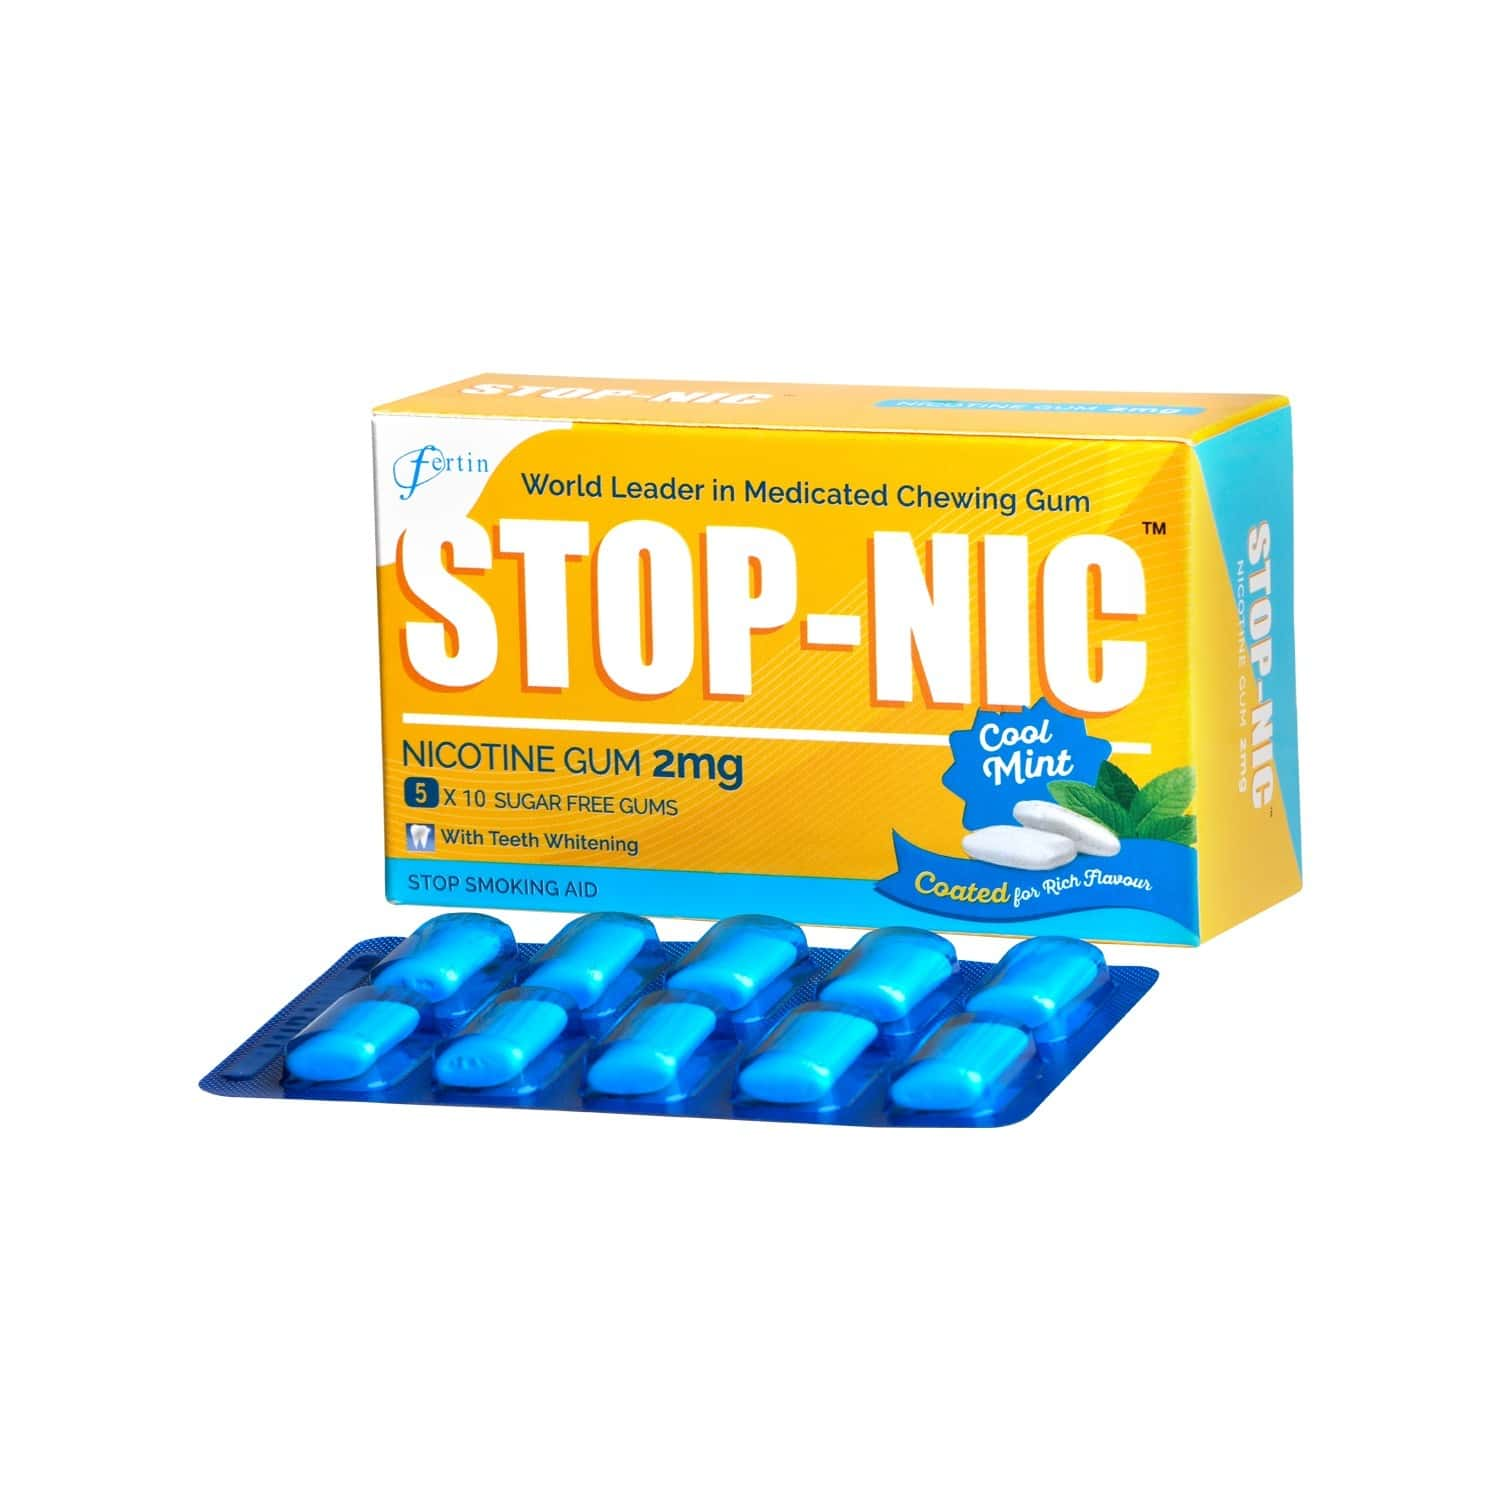 Stop-nic 2mg Nicotine Gums (5 Blister Pack) Box Of 50 's